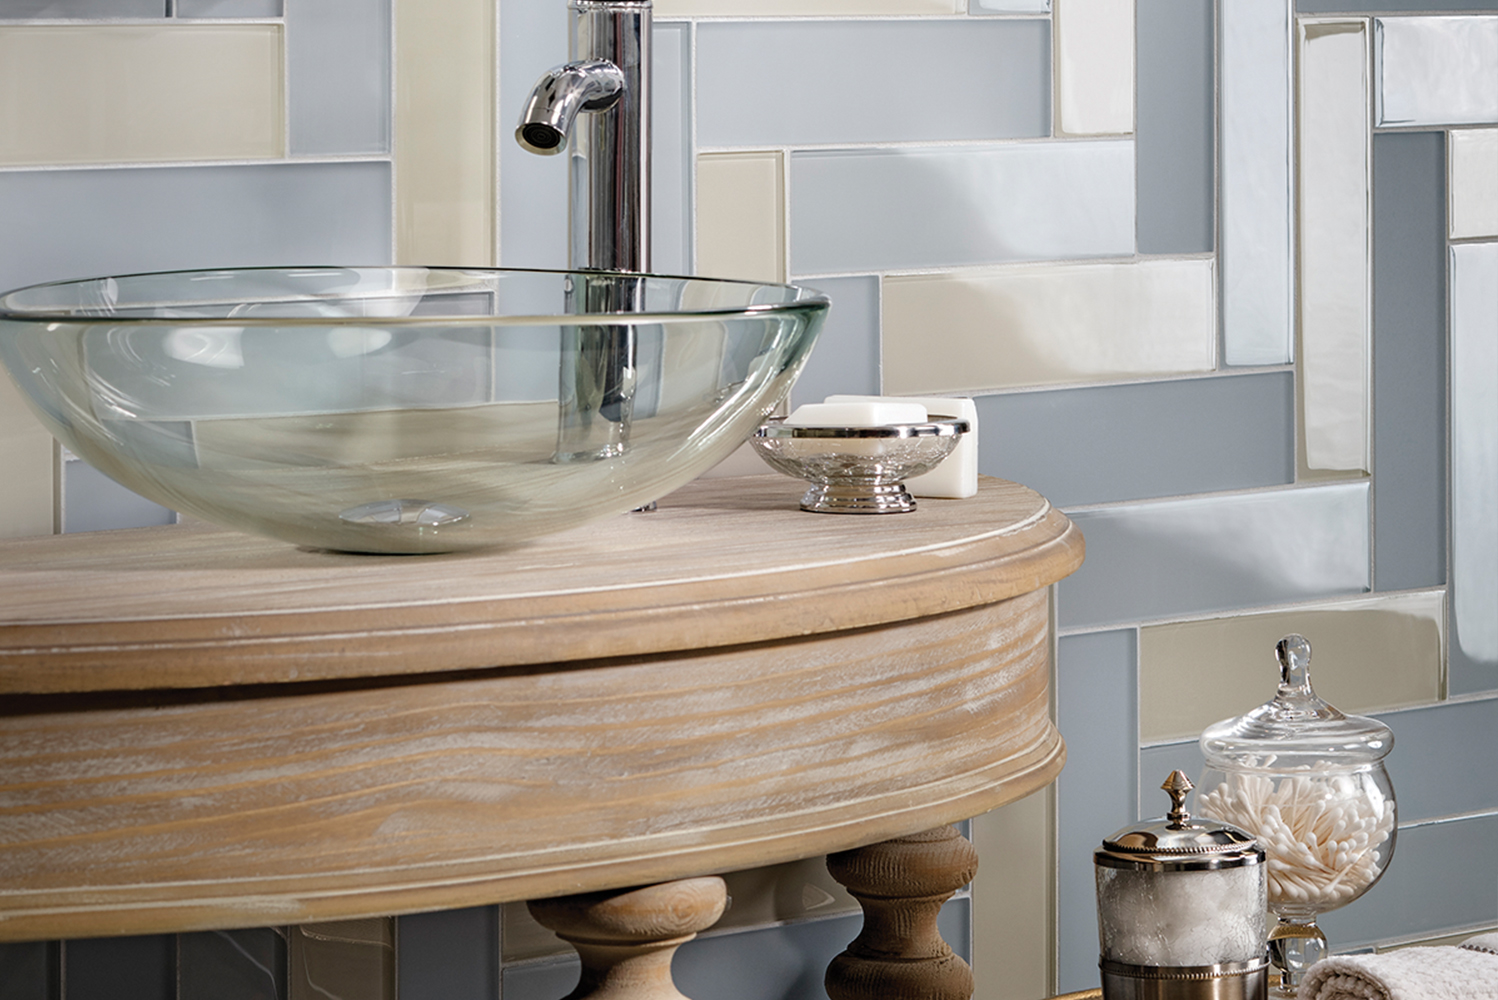 Lunada Bay Tile updated its Tomei glass tile collection with five neutral hues in two finishes.